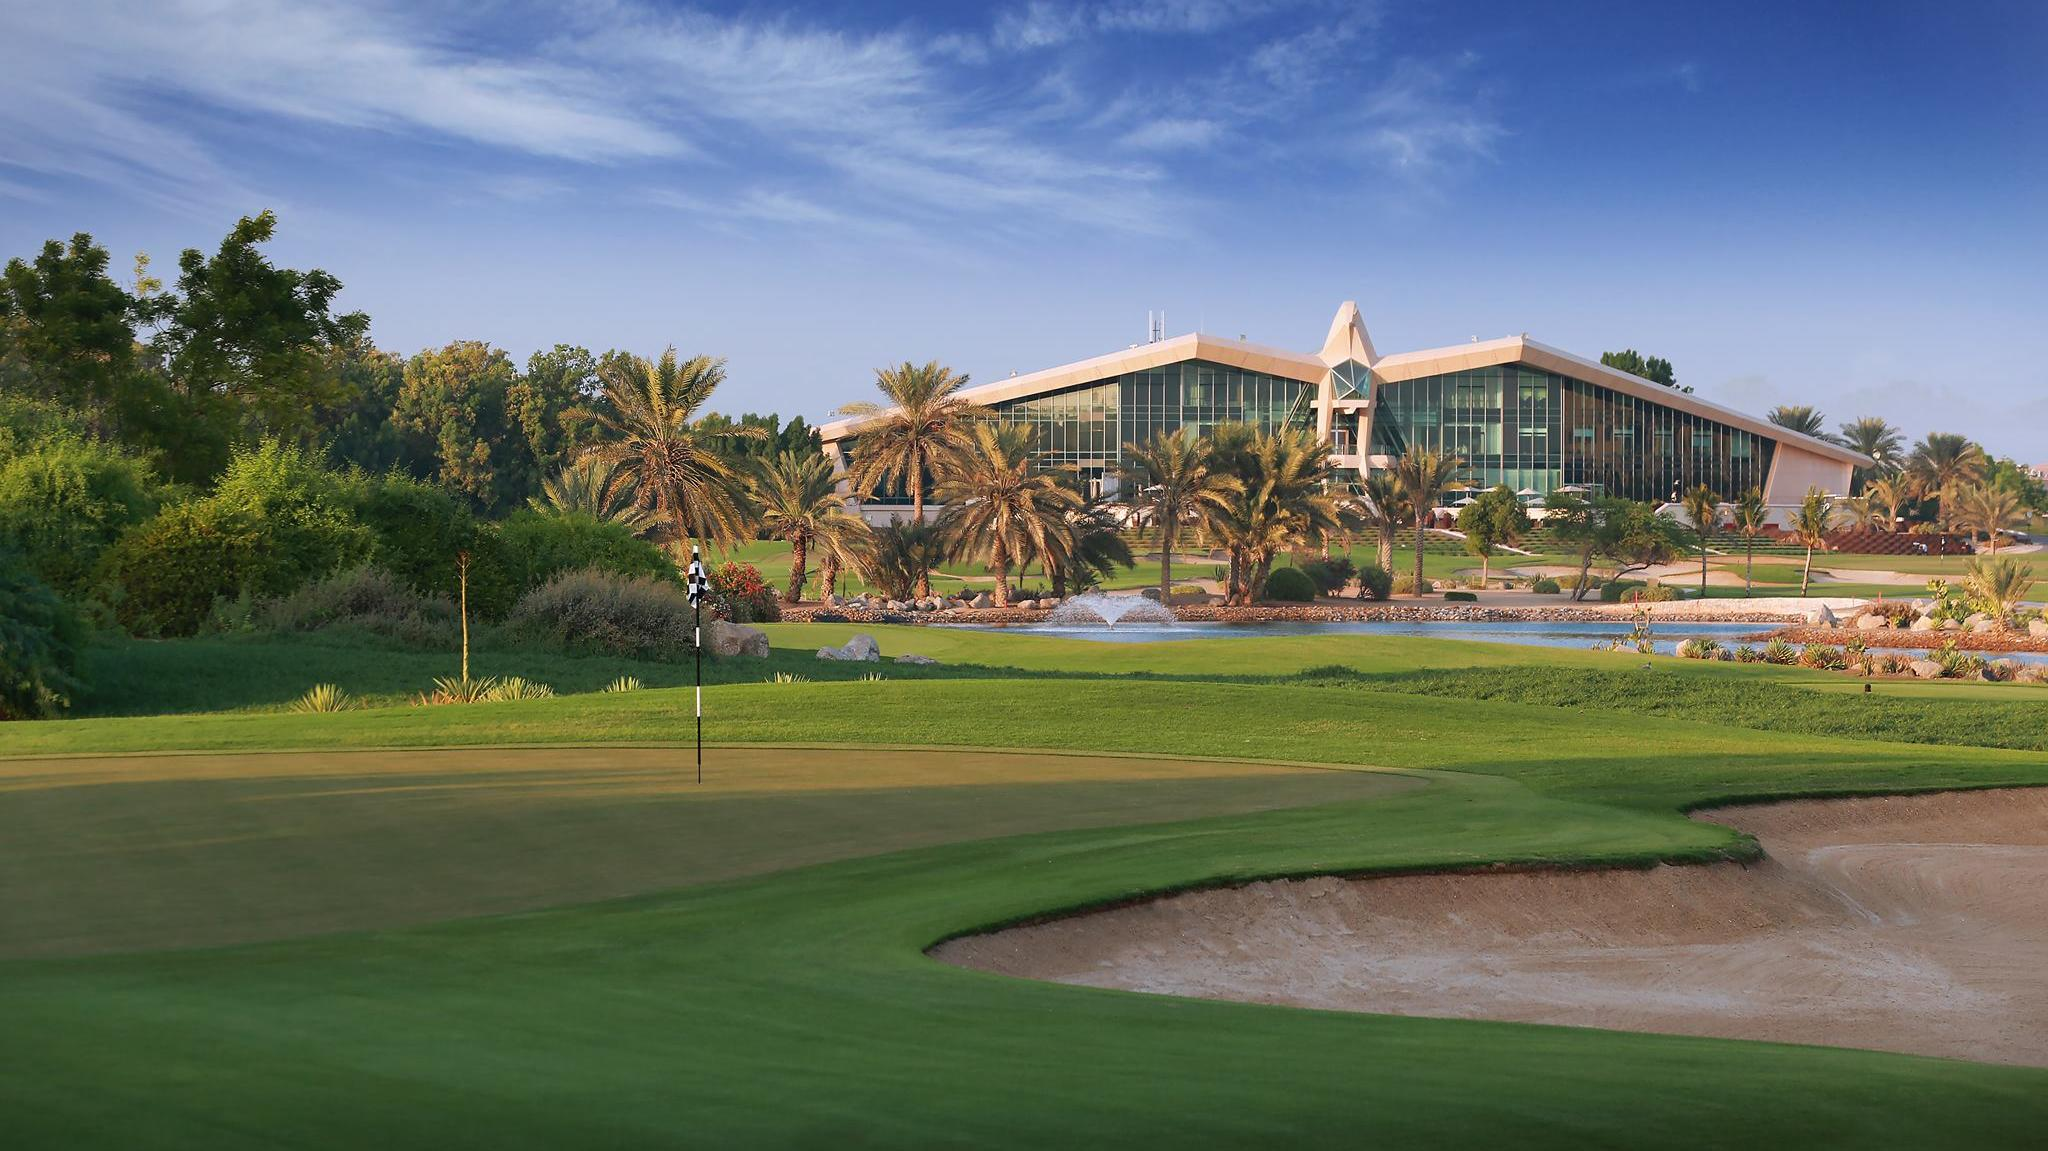 Abu dhabi golf championship pictures and images